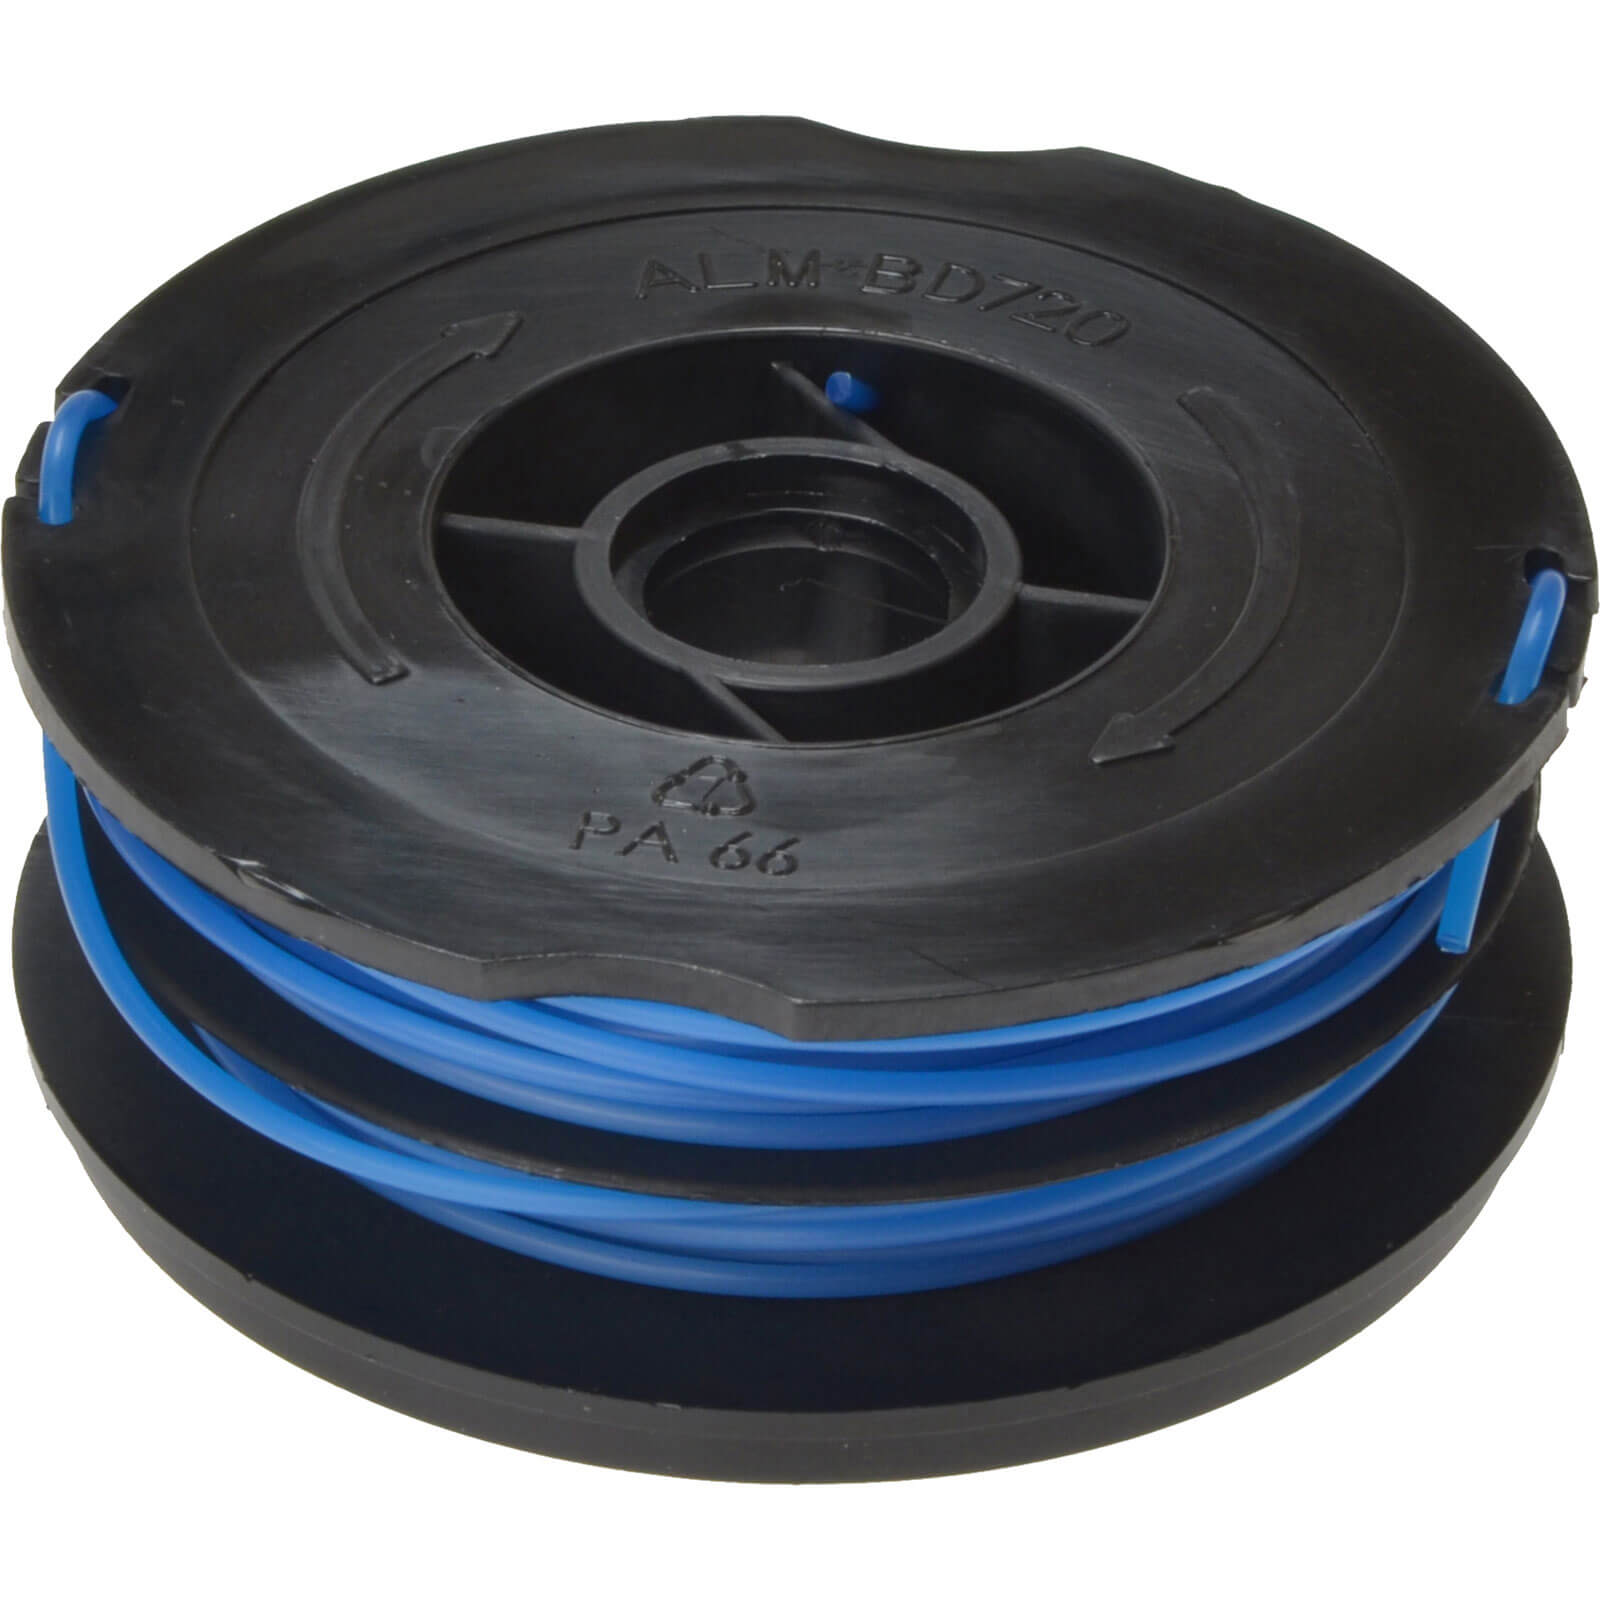 ALM Manufacturing BD720 Spool & Line to Fit Black & Decker Twin Line Reflex Grass Trimmers